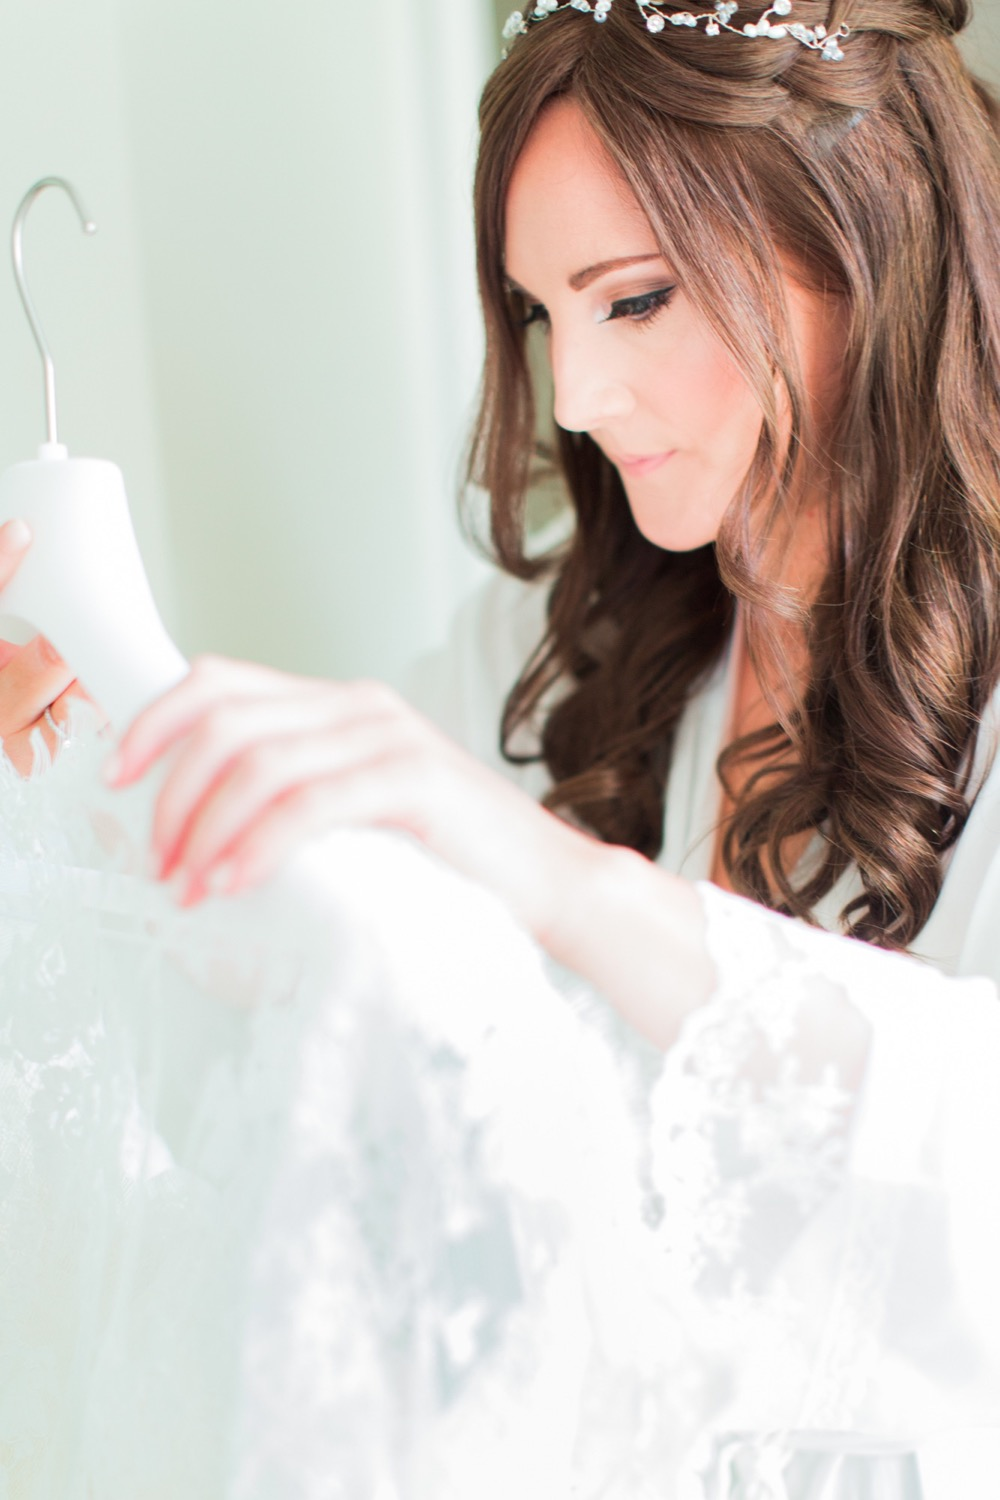 A close up shot of the bride holding her veil while getting ready. She has long dark hair that she wears loose.